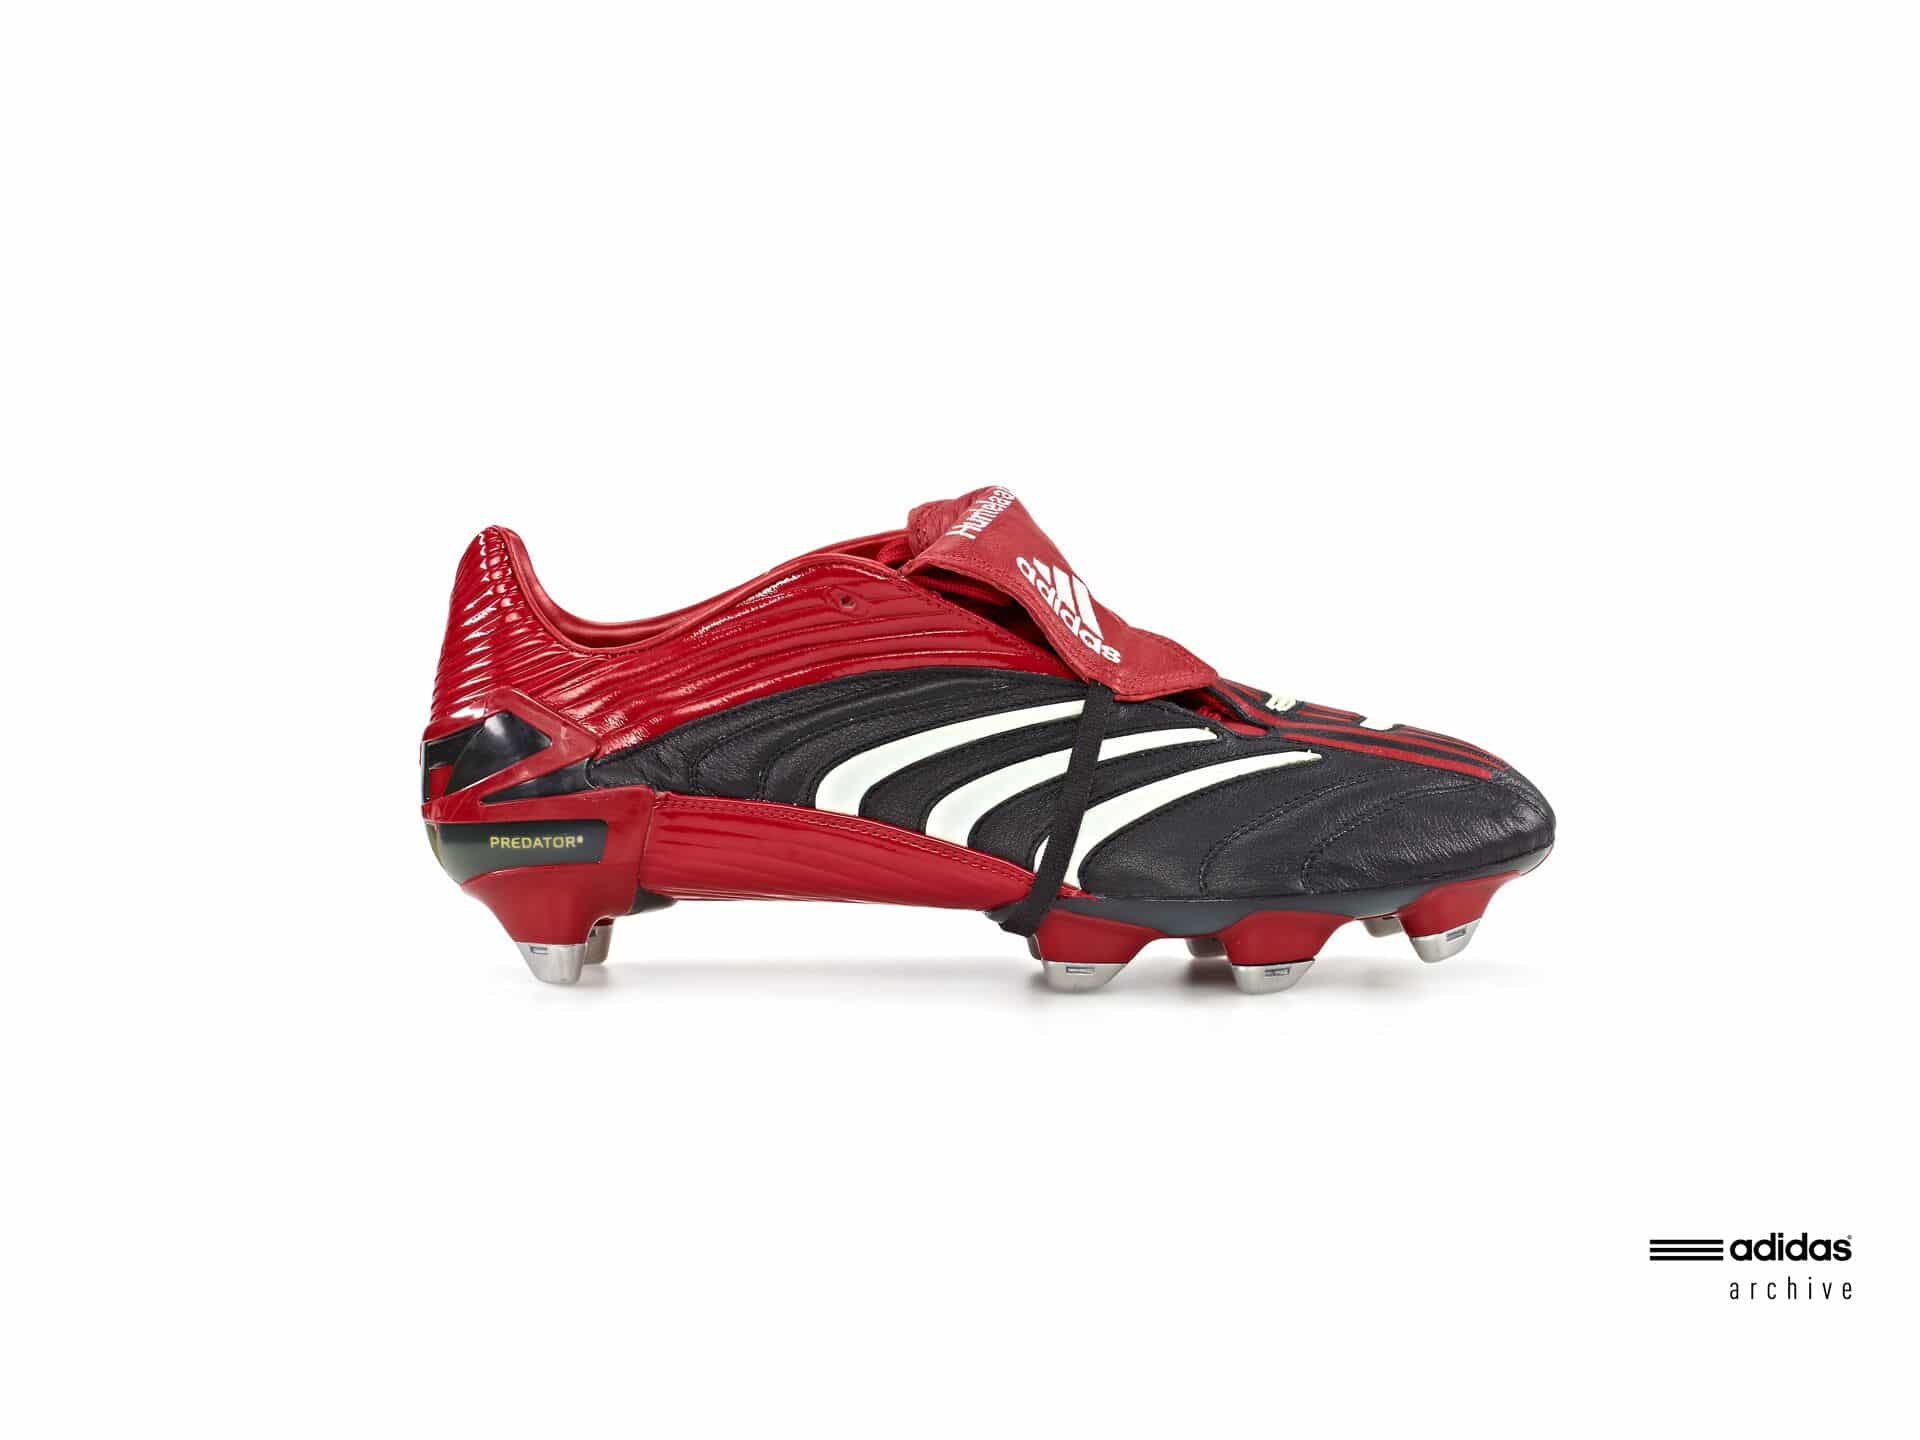 chaussure-football-adidas-Predator-Absolute-2006-preview